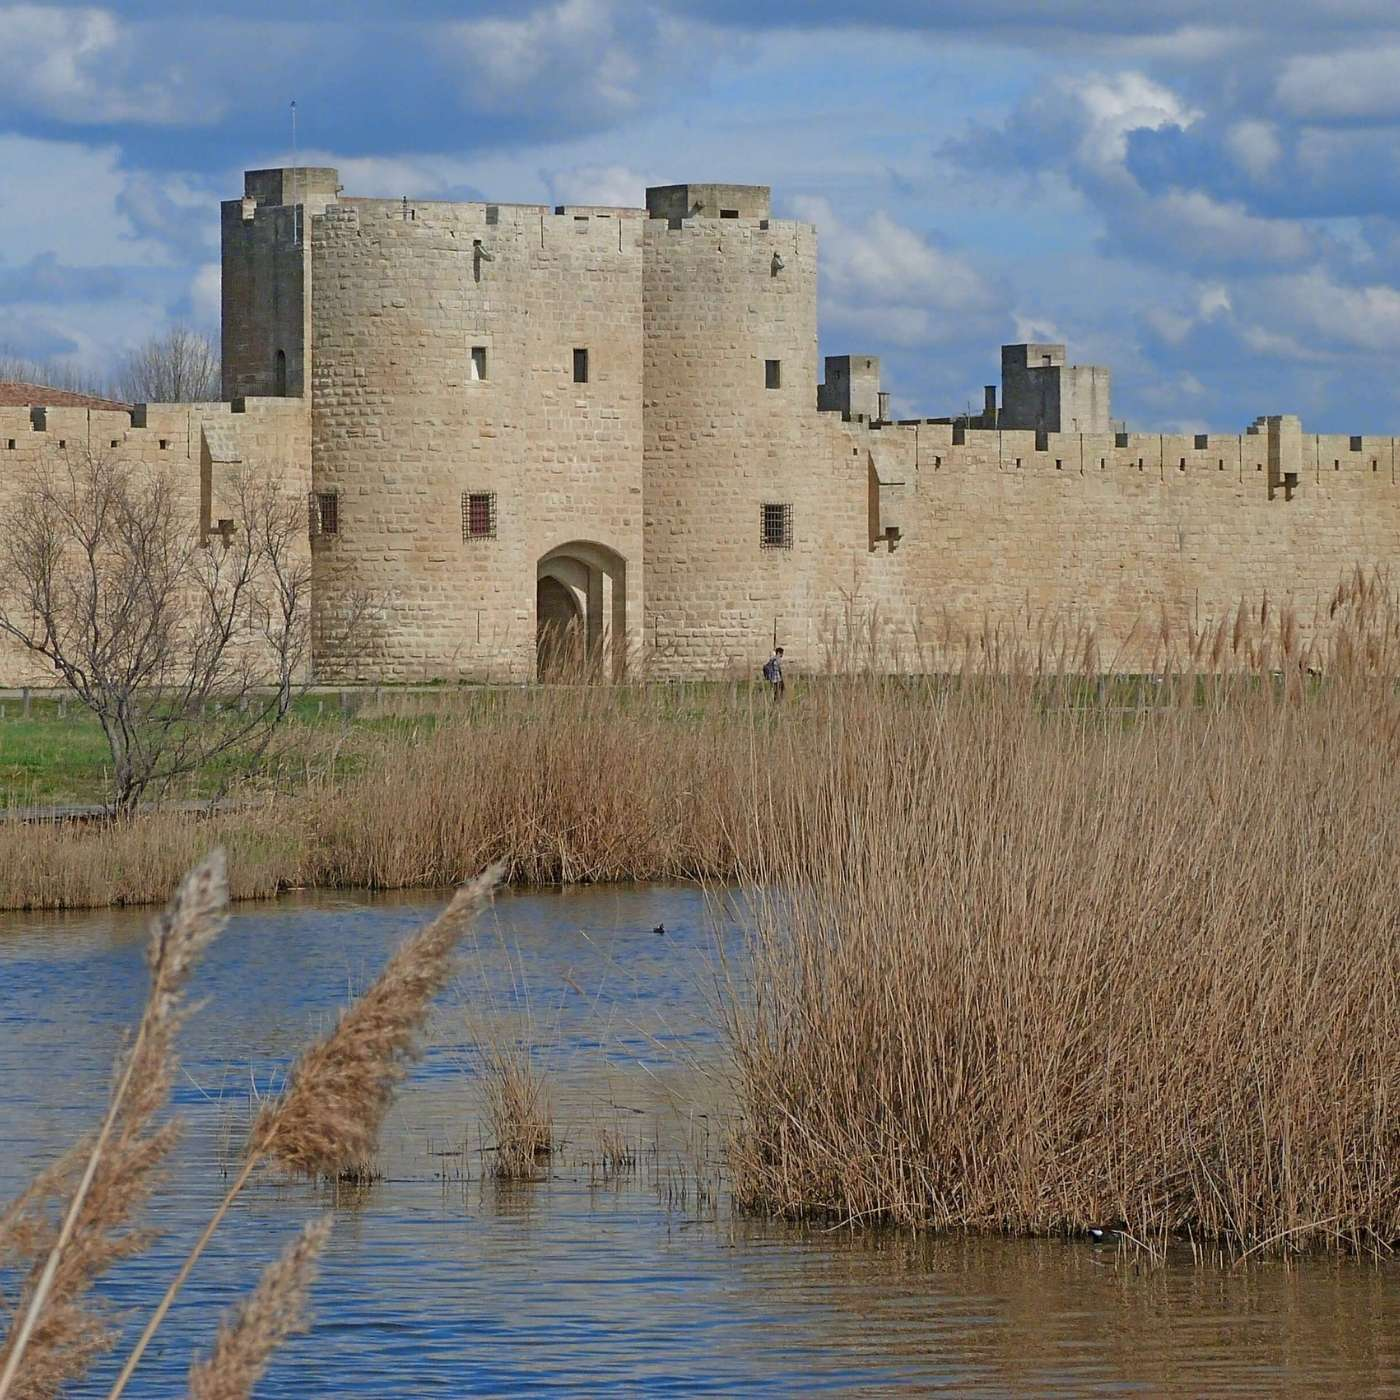 Aigues-Morte the Fortified City, Episode 313